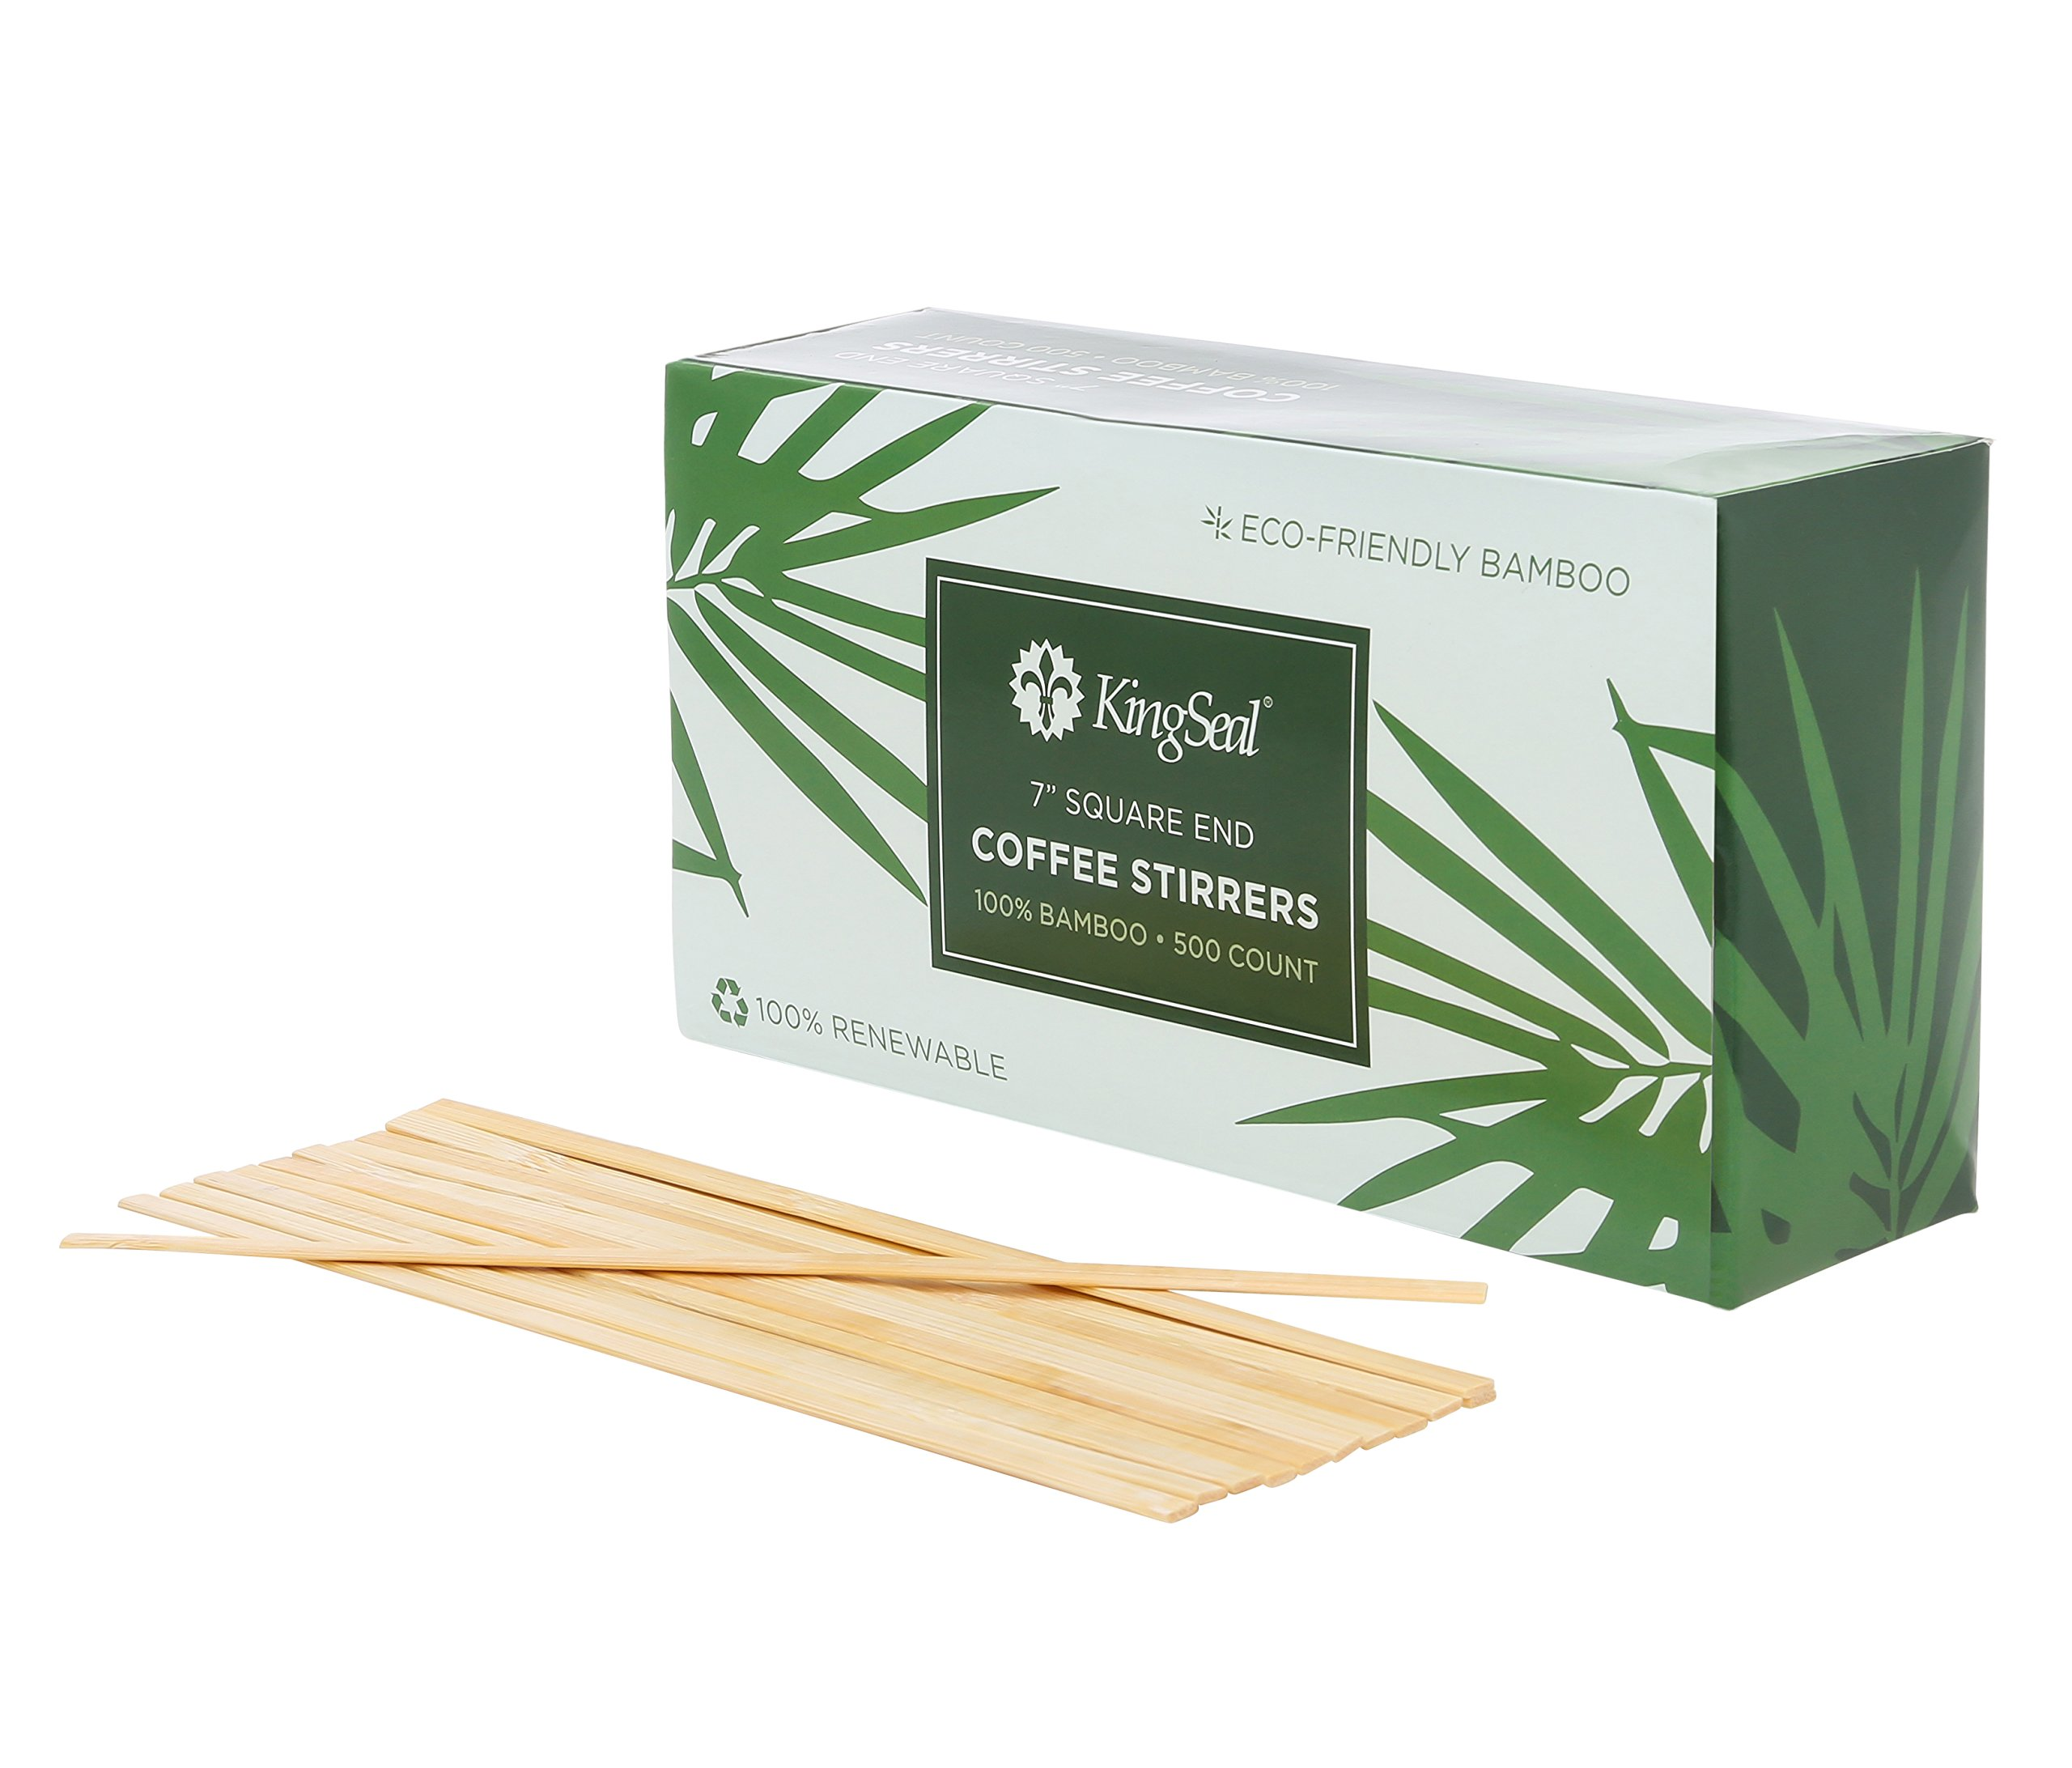 KingSeal Bamboo Wood Coffee Beverage Stirrers, Square End - 7 Inches, 2 boxes of 500 each, 100% Renewable and Biodegradable, Stronger and Thicker Than Standard Wood